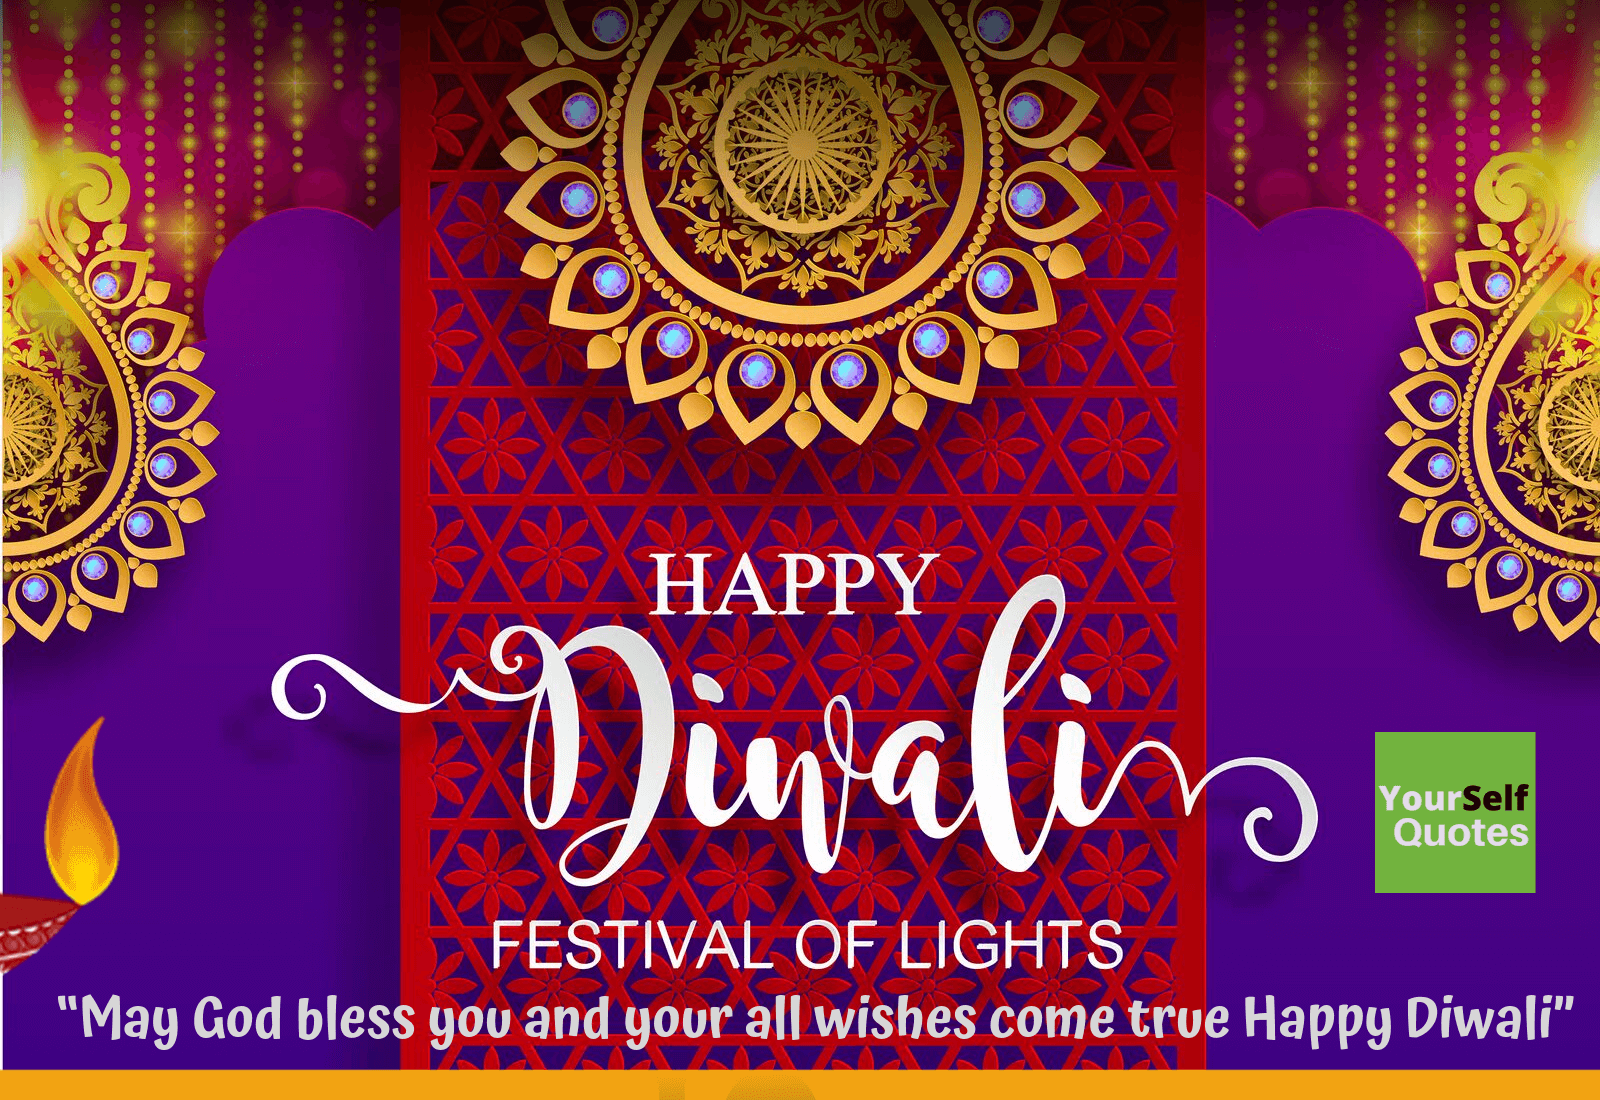 Happy Diwali Image For Family